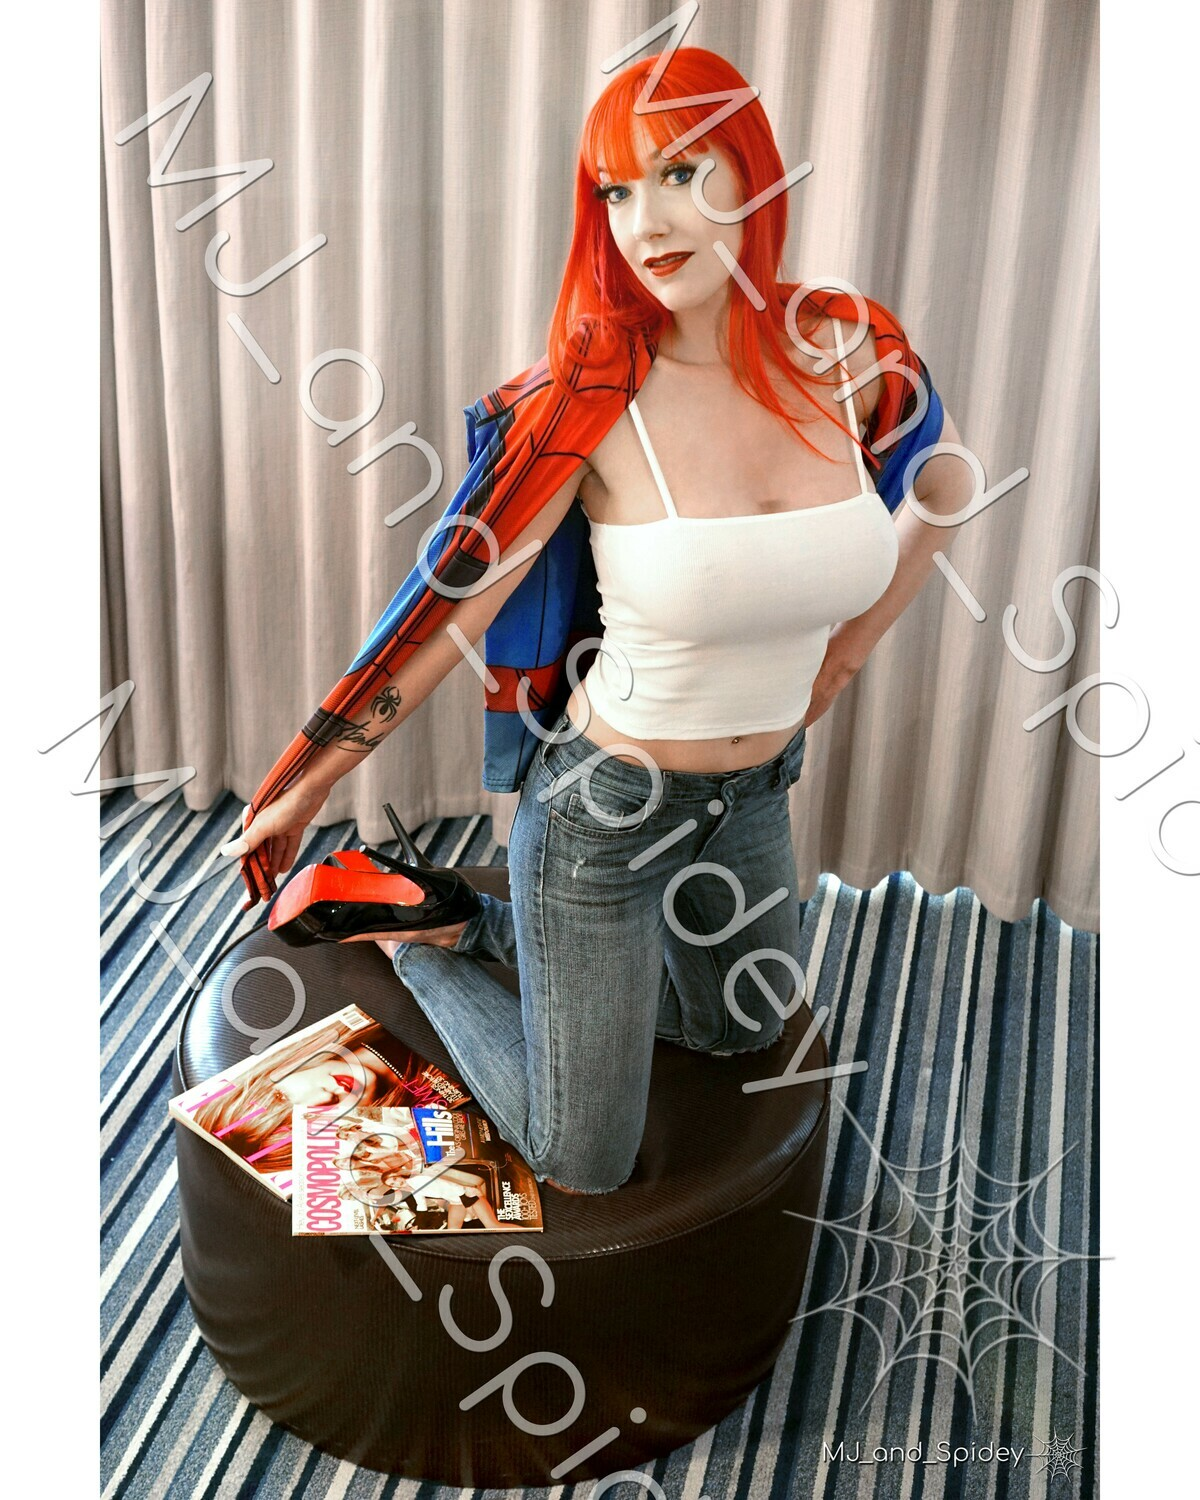 Marvel - Spider-Man - Mary Jane Watson - Campbell No. 7 - Digital Cosplay Image (@MJ_and_Spidey, MJ and Spidey, Comics)